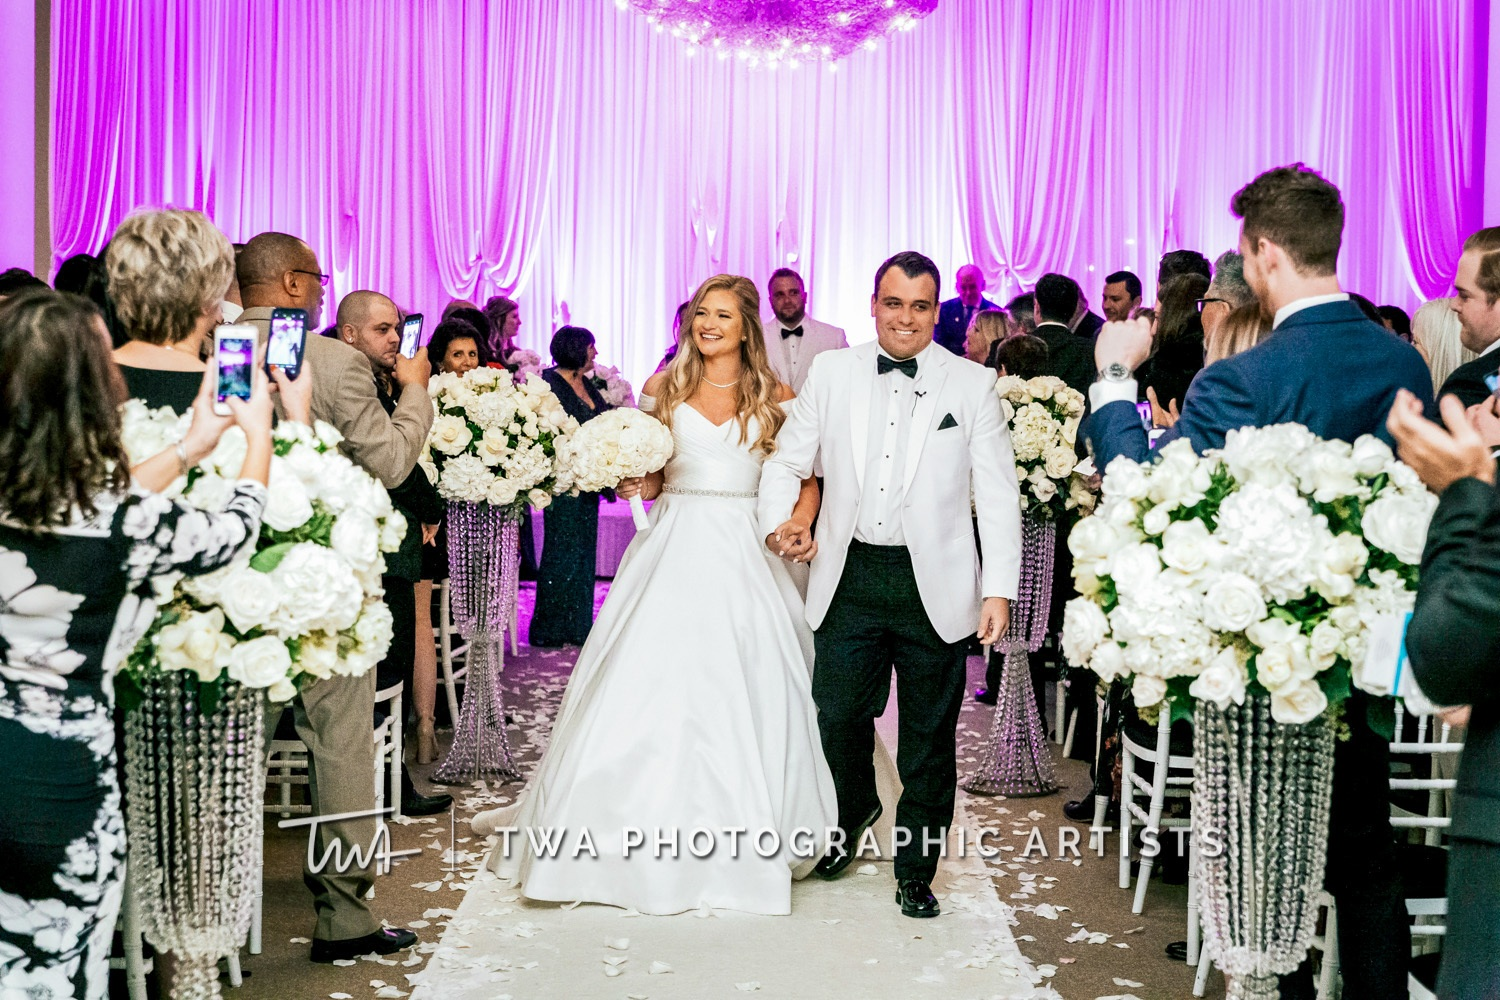 Chicago-Wedding-Photographer-TWA-Photographic-Artists-Belvedere-Banquets_Anast_Campanella_MiC_ME-1212